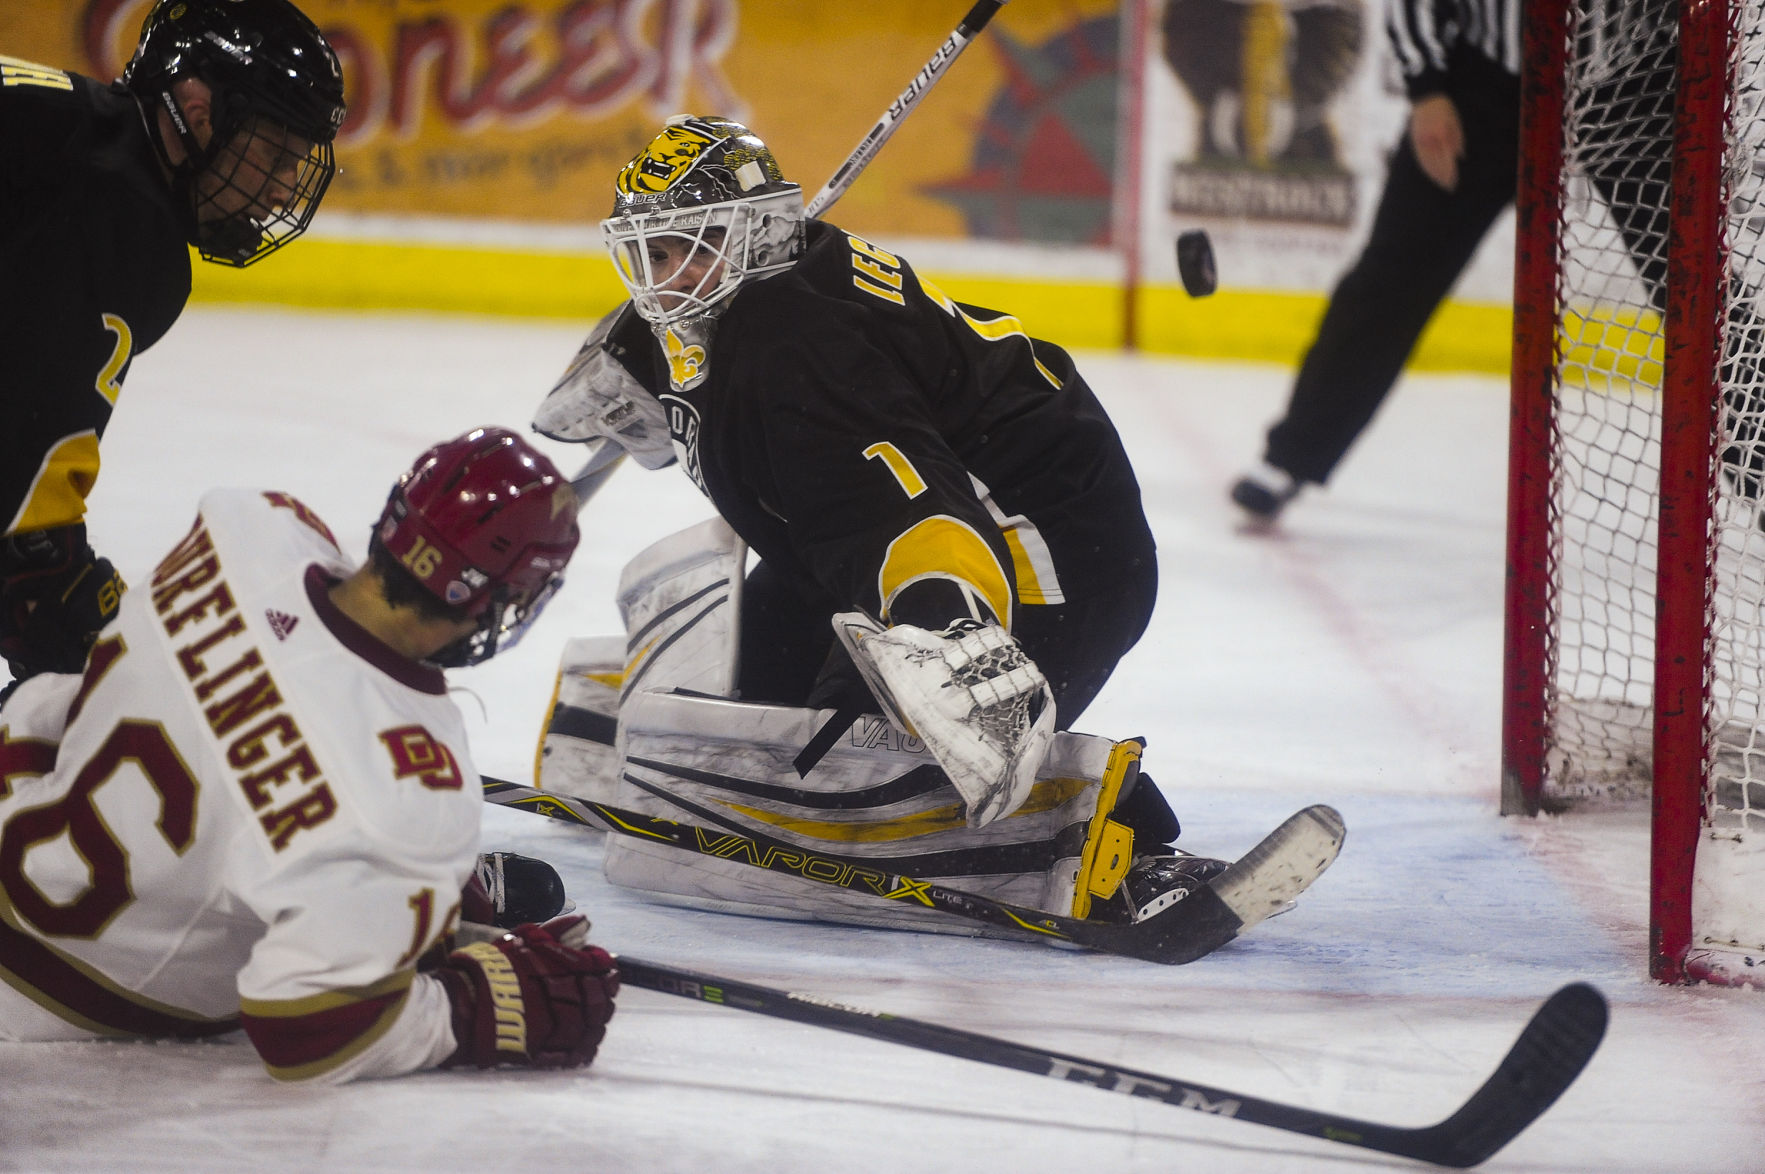 NCHC: Situation Feels Unexpectedly The Same, But Opportunity There For Colorado College Against Denver